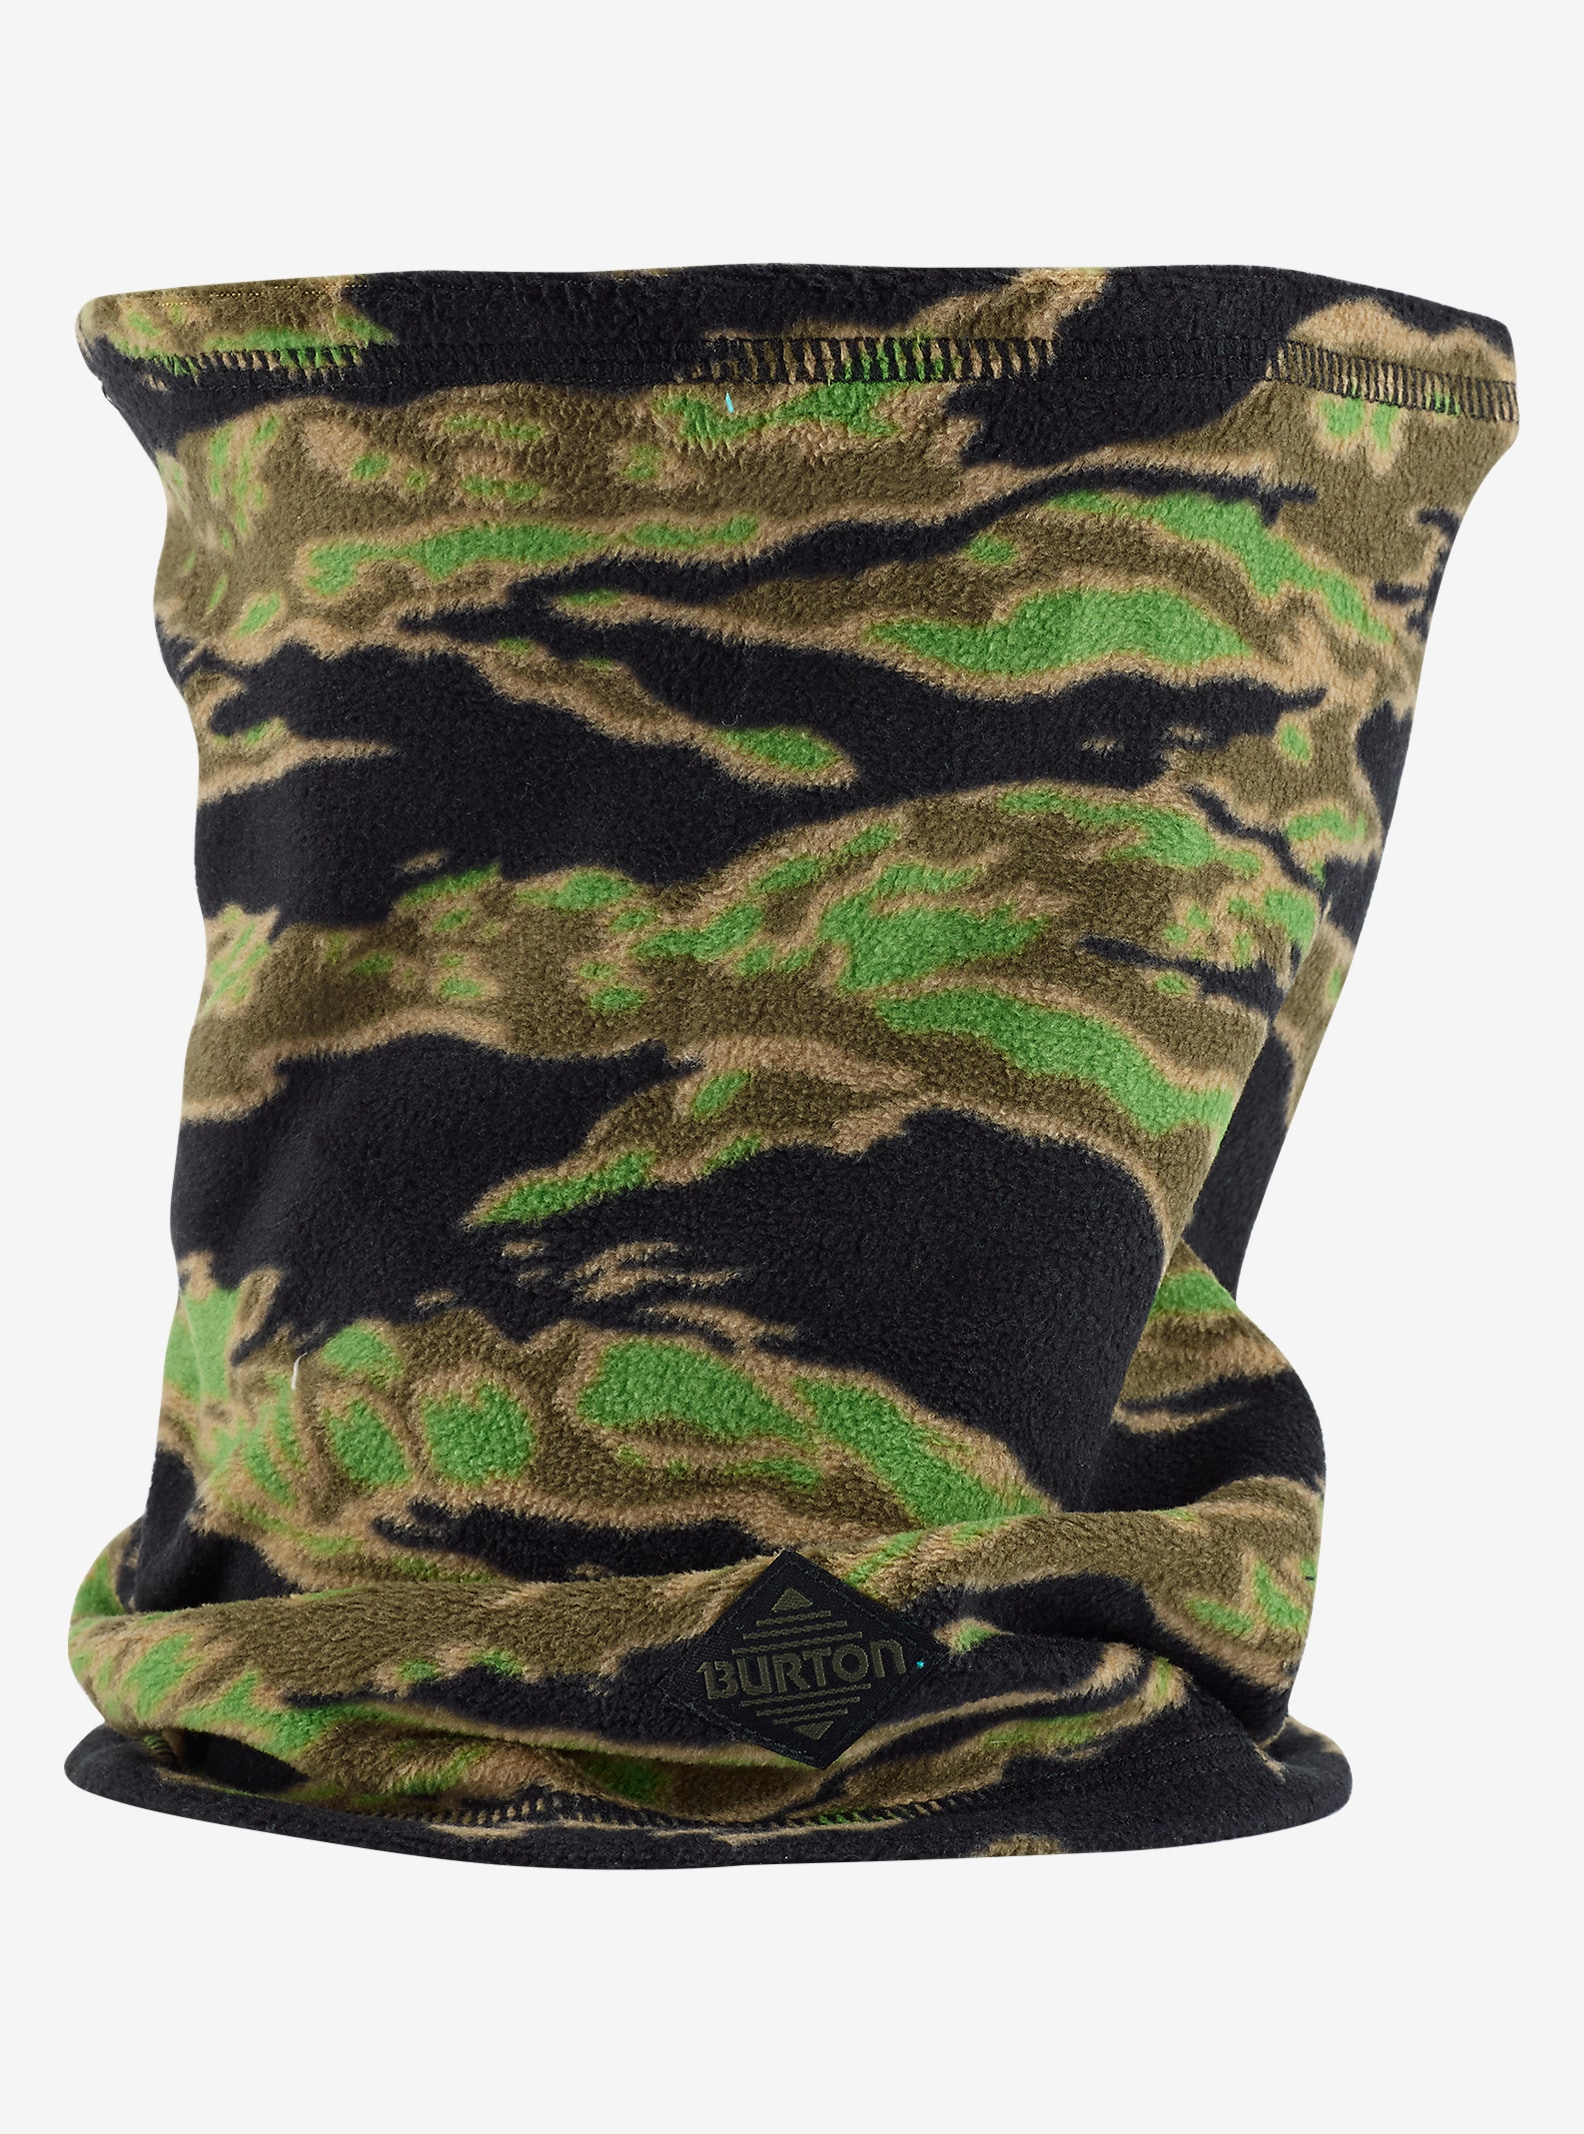 Burton Kids' Neck Warmer shown in Beast Camo